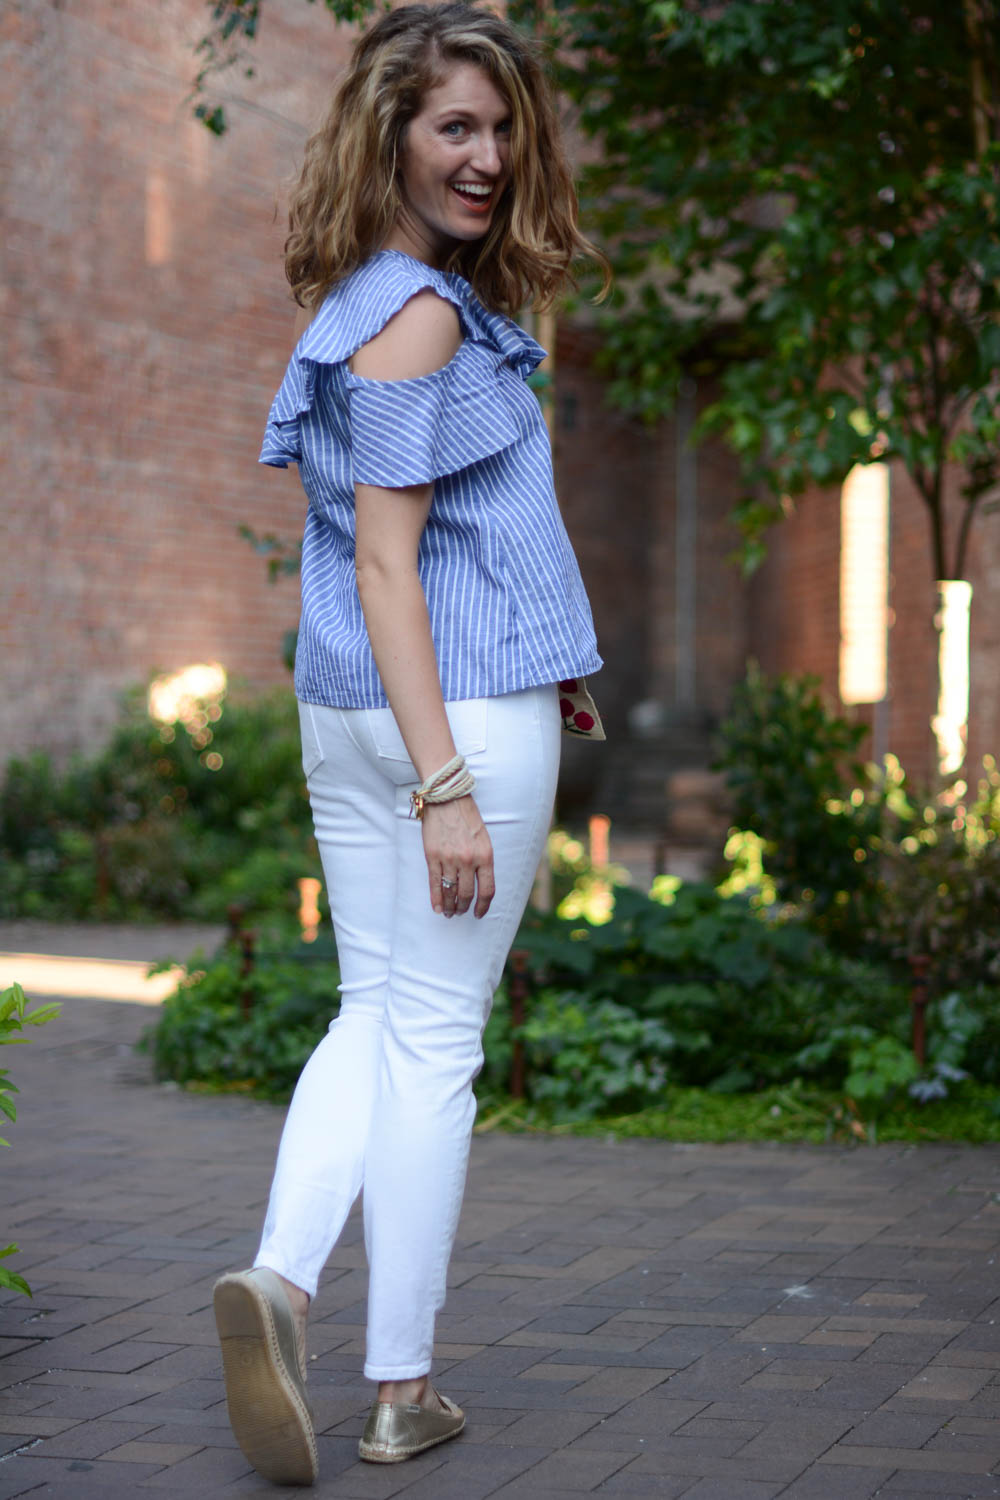 summer-outfit-white-jeans-2.jpg